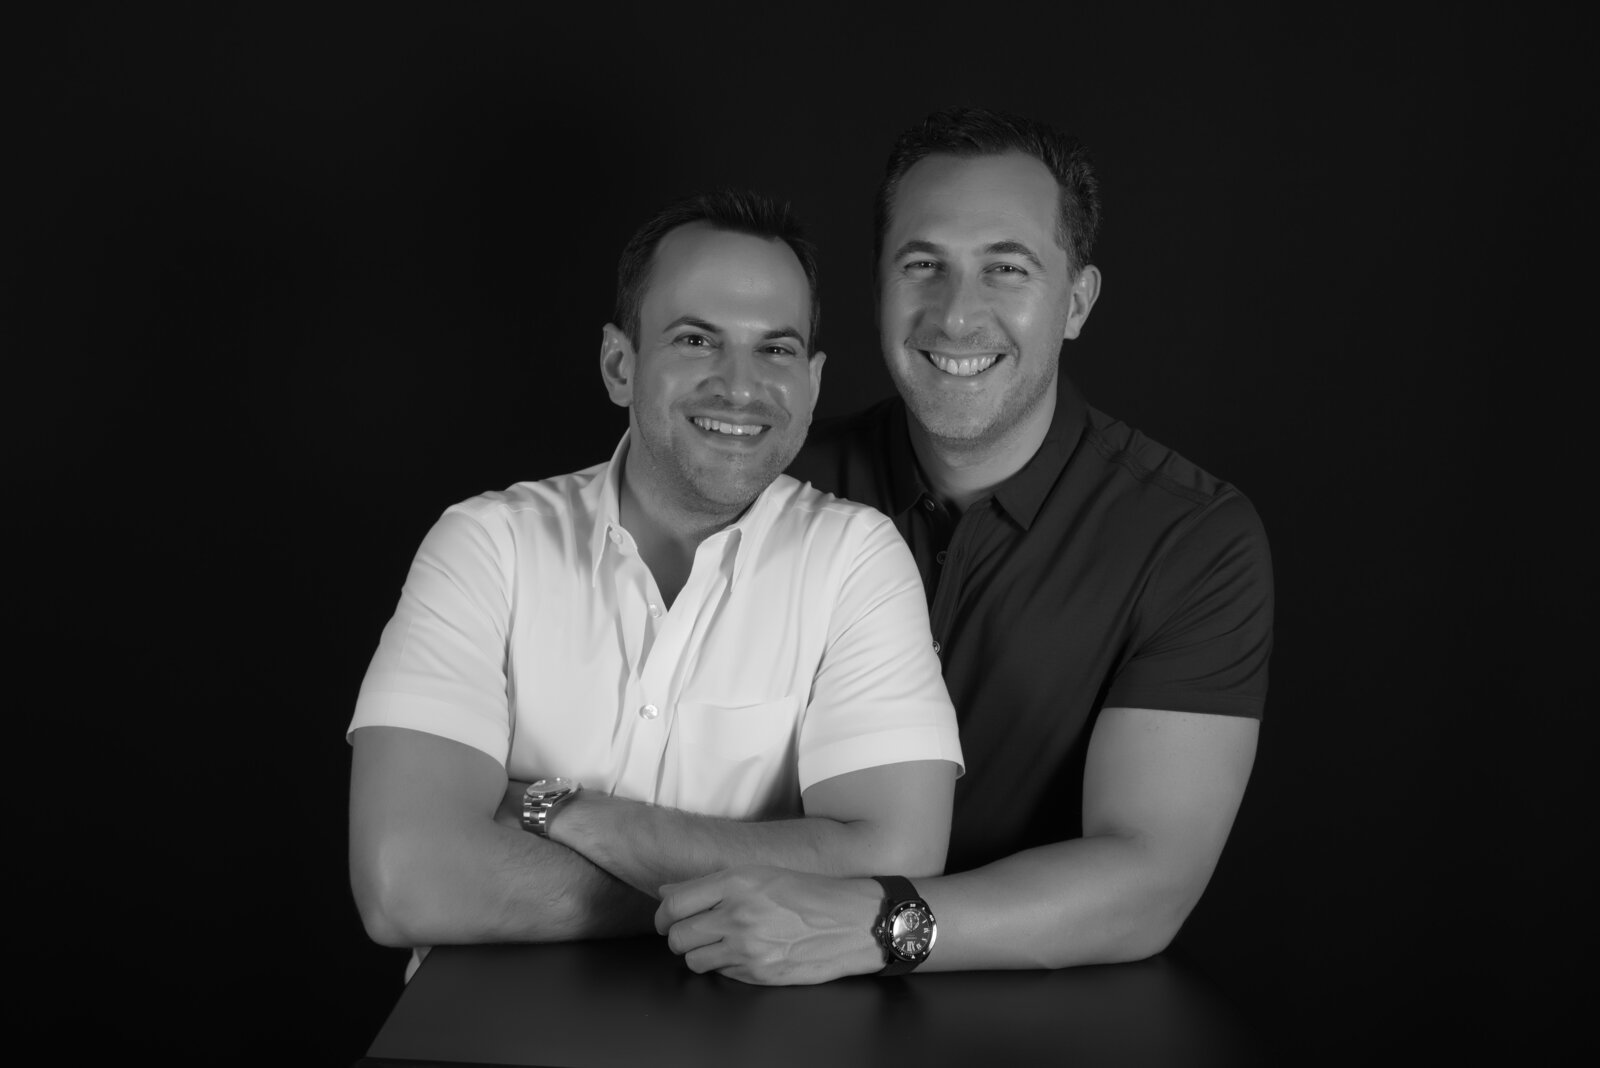 Michael Reginbogin (left) and Jason Berry (right) are co-founders and principals at Knead Hospitality + Design, based in Washington, DC. Knead is a multi-unit and multi-concept design firm which owns, operates, and designs its own restaurant establishments.   Photo 9 of 10 in 10 Designers and Architects Share What They're Most Thankful for in a Turbulent Year